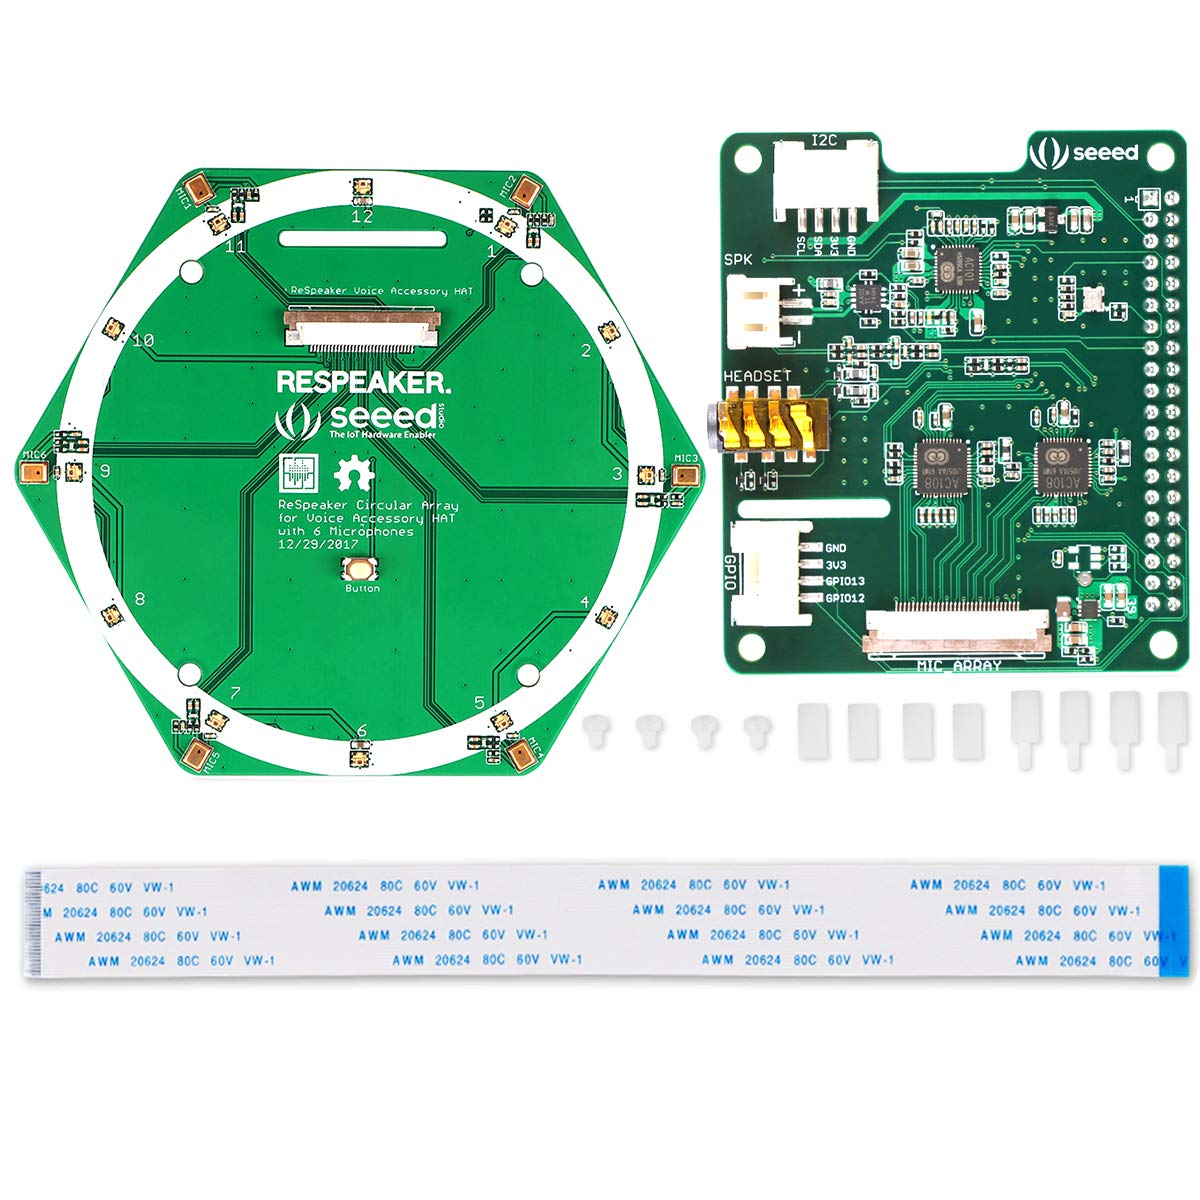 MakerHawk ReSpeaker 6-Mic Circular Array Kit Based on AC108 AD and AC101 DAC Chip for AI and Voice Applications and Raspberry Pi Zero/Zero/W/3B/2B/B+